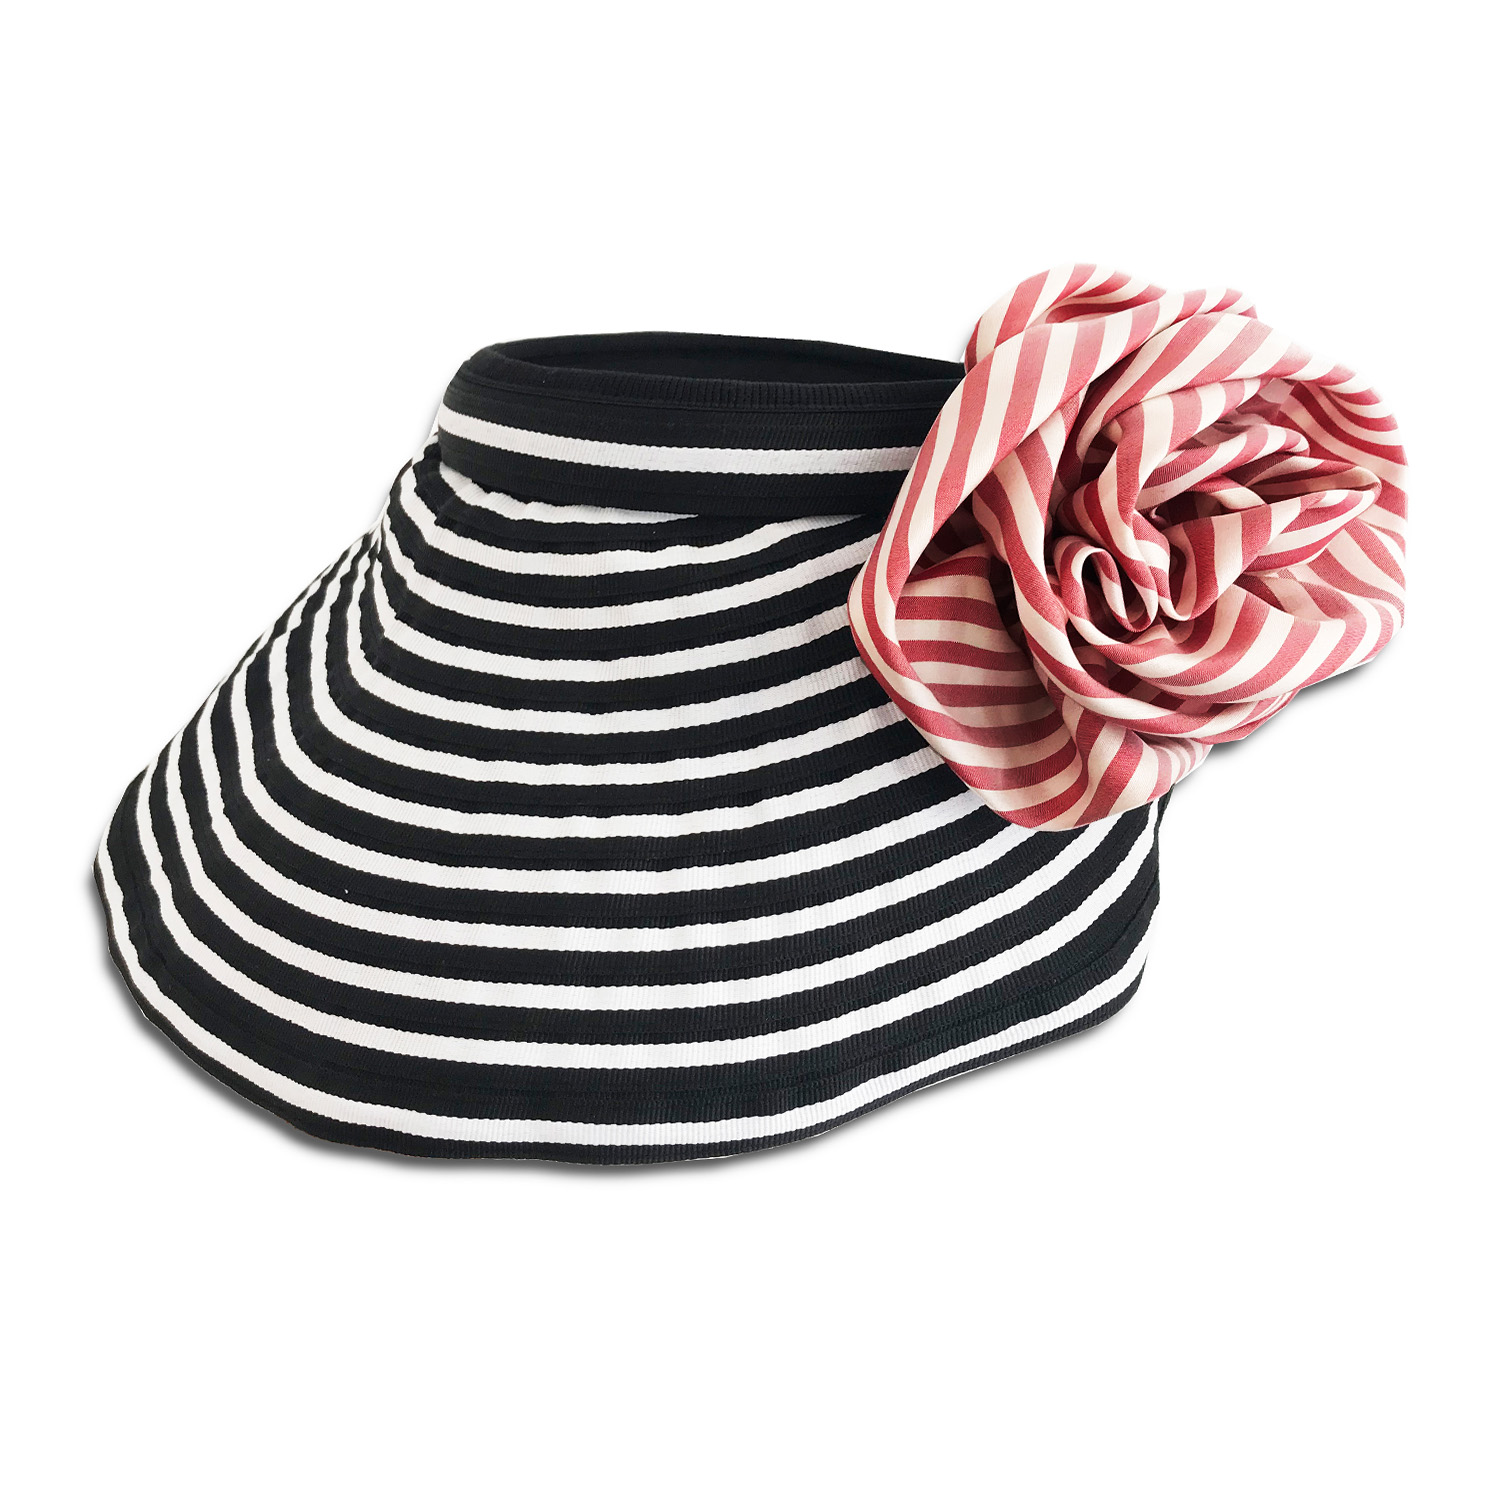 CVD.071B 14u Hellenic Fashion Brand Colorful Modern stylish trendy visor hat foldable cotton beautiful Luxury limited Style woman gift exclusive Cotton Removable Flower